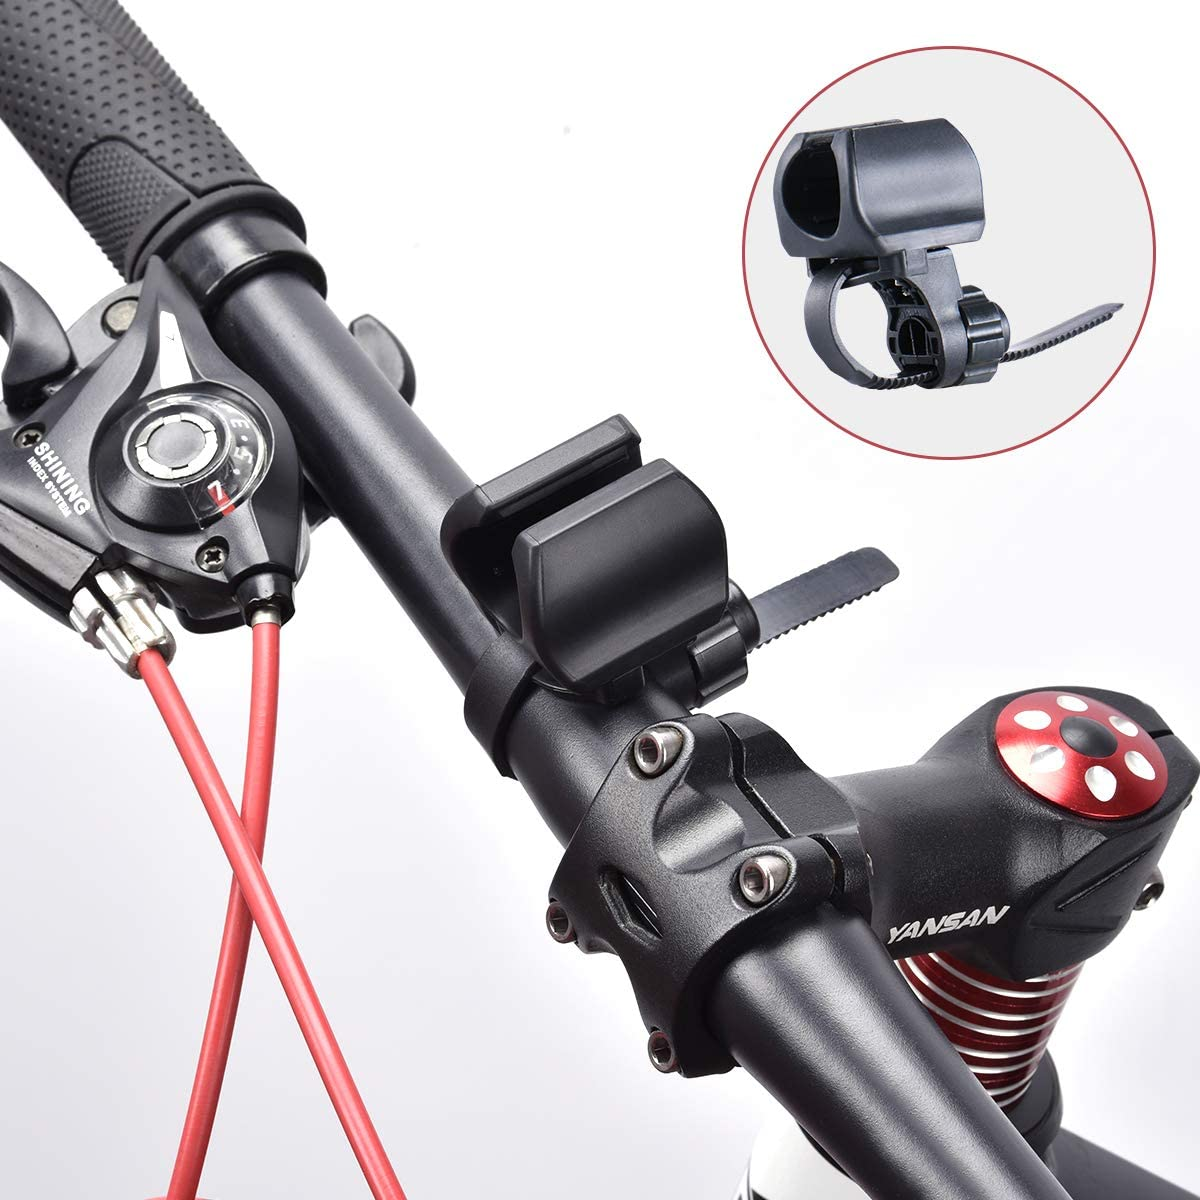 Bicycle Light Torch  Flashlight Bracket Bike Accessories For Go pro Mount/_*wu